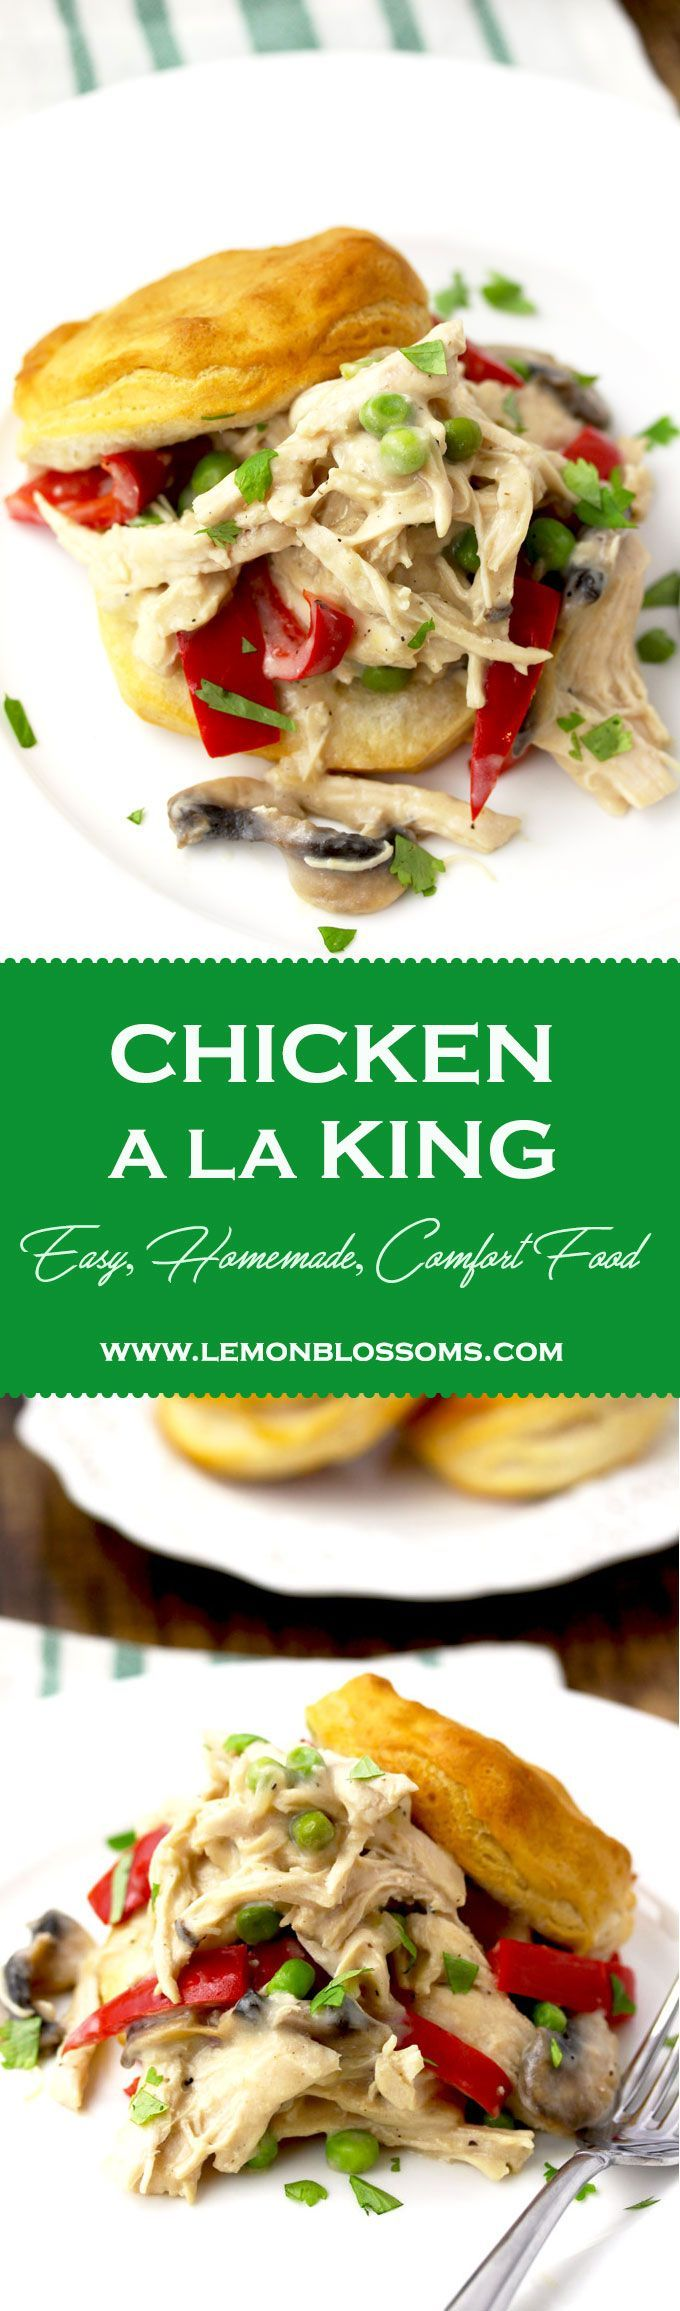 This easy chicken a la king recipe is comfort food to the max made this easy chicken a la king recipe is comfort food to the max made from scratch with tender chicken mushrooms red bell peppers and peas in a super creamy forumfinder Images